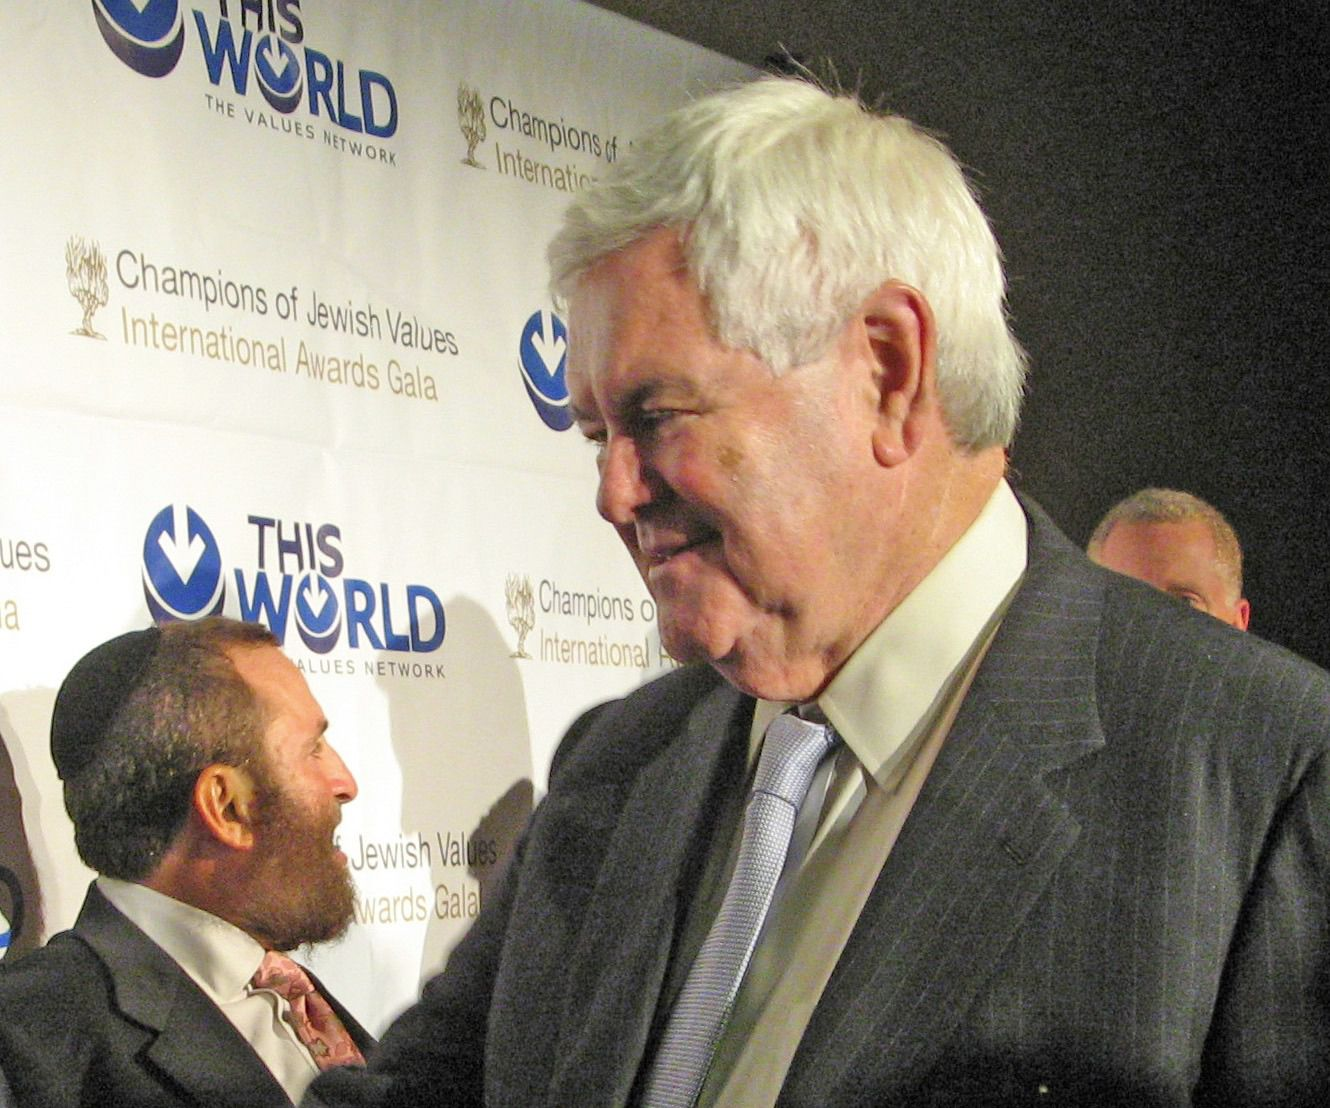 Newt Gingrich and Rabbi Shmuley Boteach